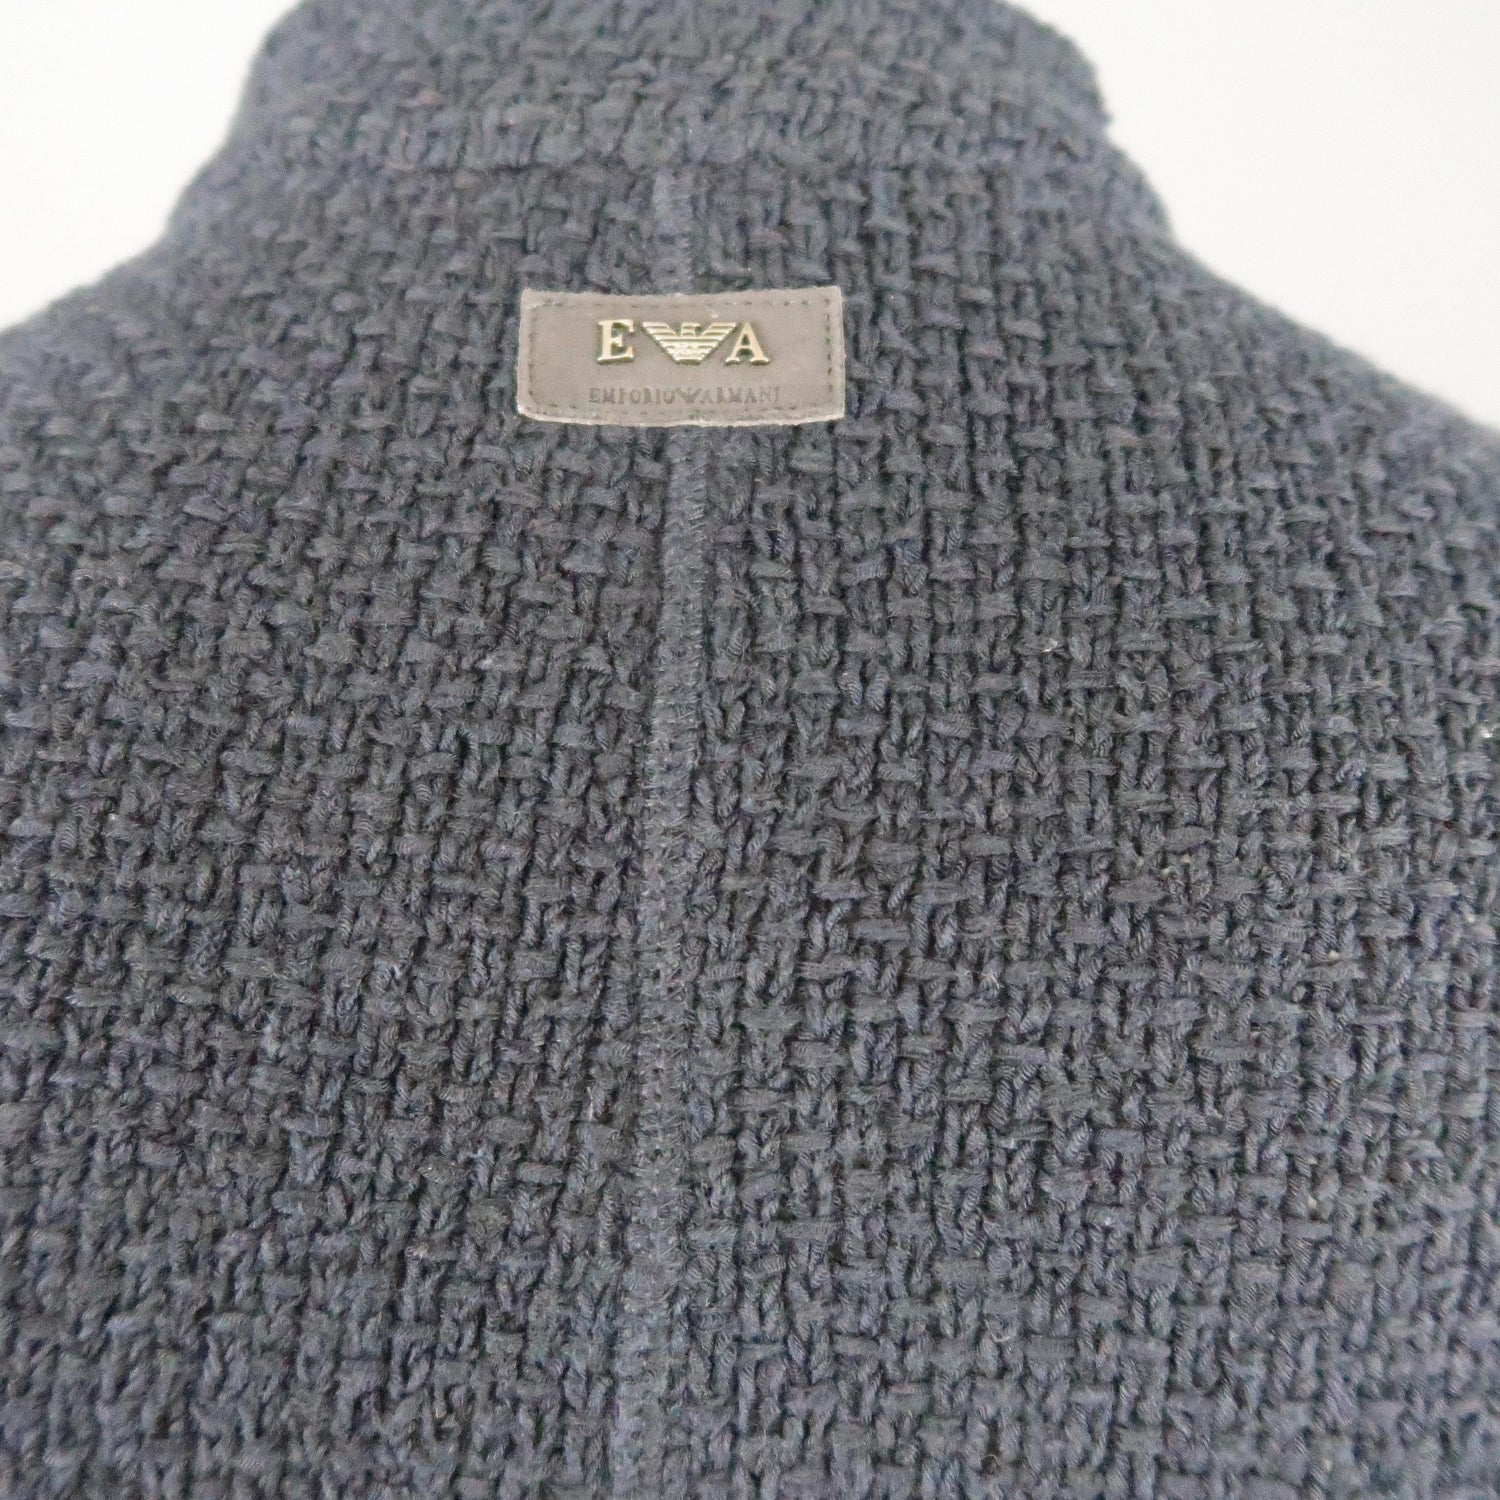 cdcc0e4d622ab6 Men's EMPORIO ARMANI XL Navy Tweed Cotton Blend High Collar Jacket For Sale  at 1stdibs